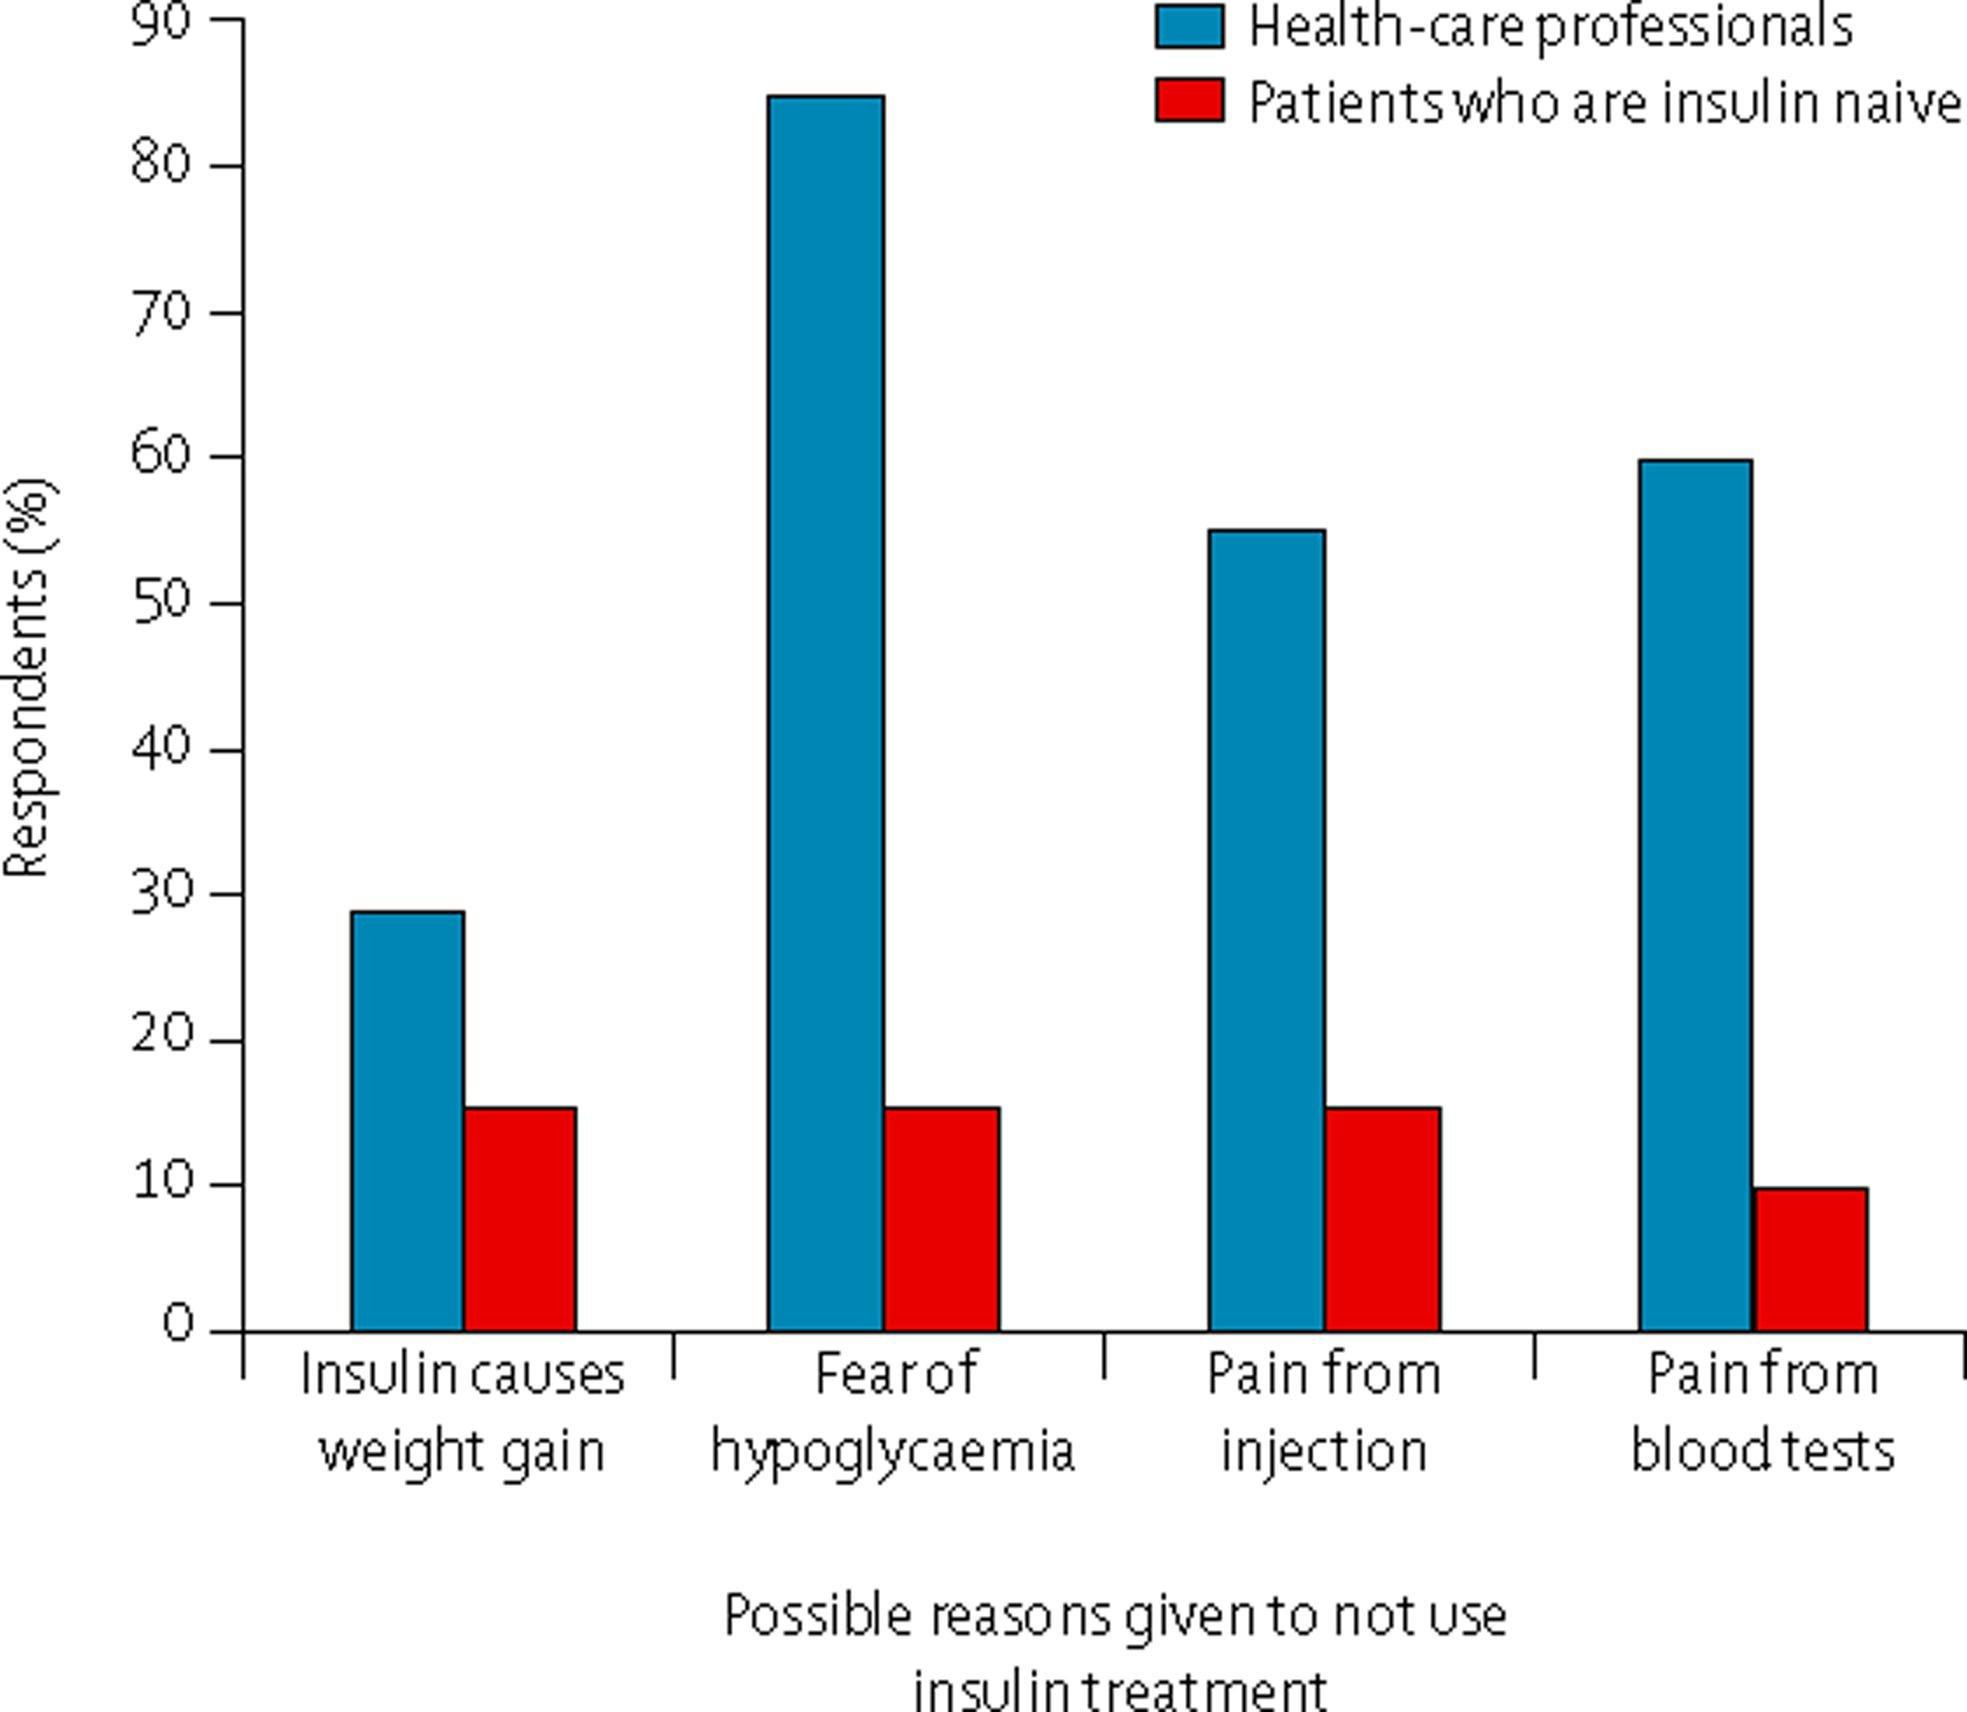 Which Type Of Antidiabetic Drugs Is Injected Subcutaneously To Treat Type 2 Diabetes?